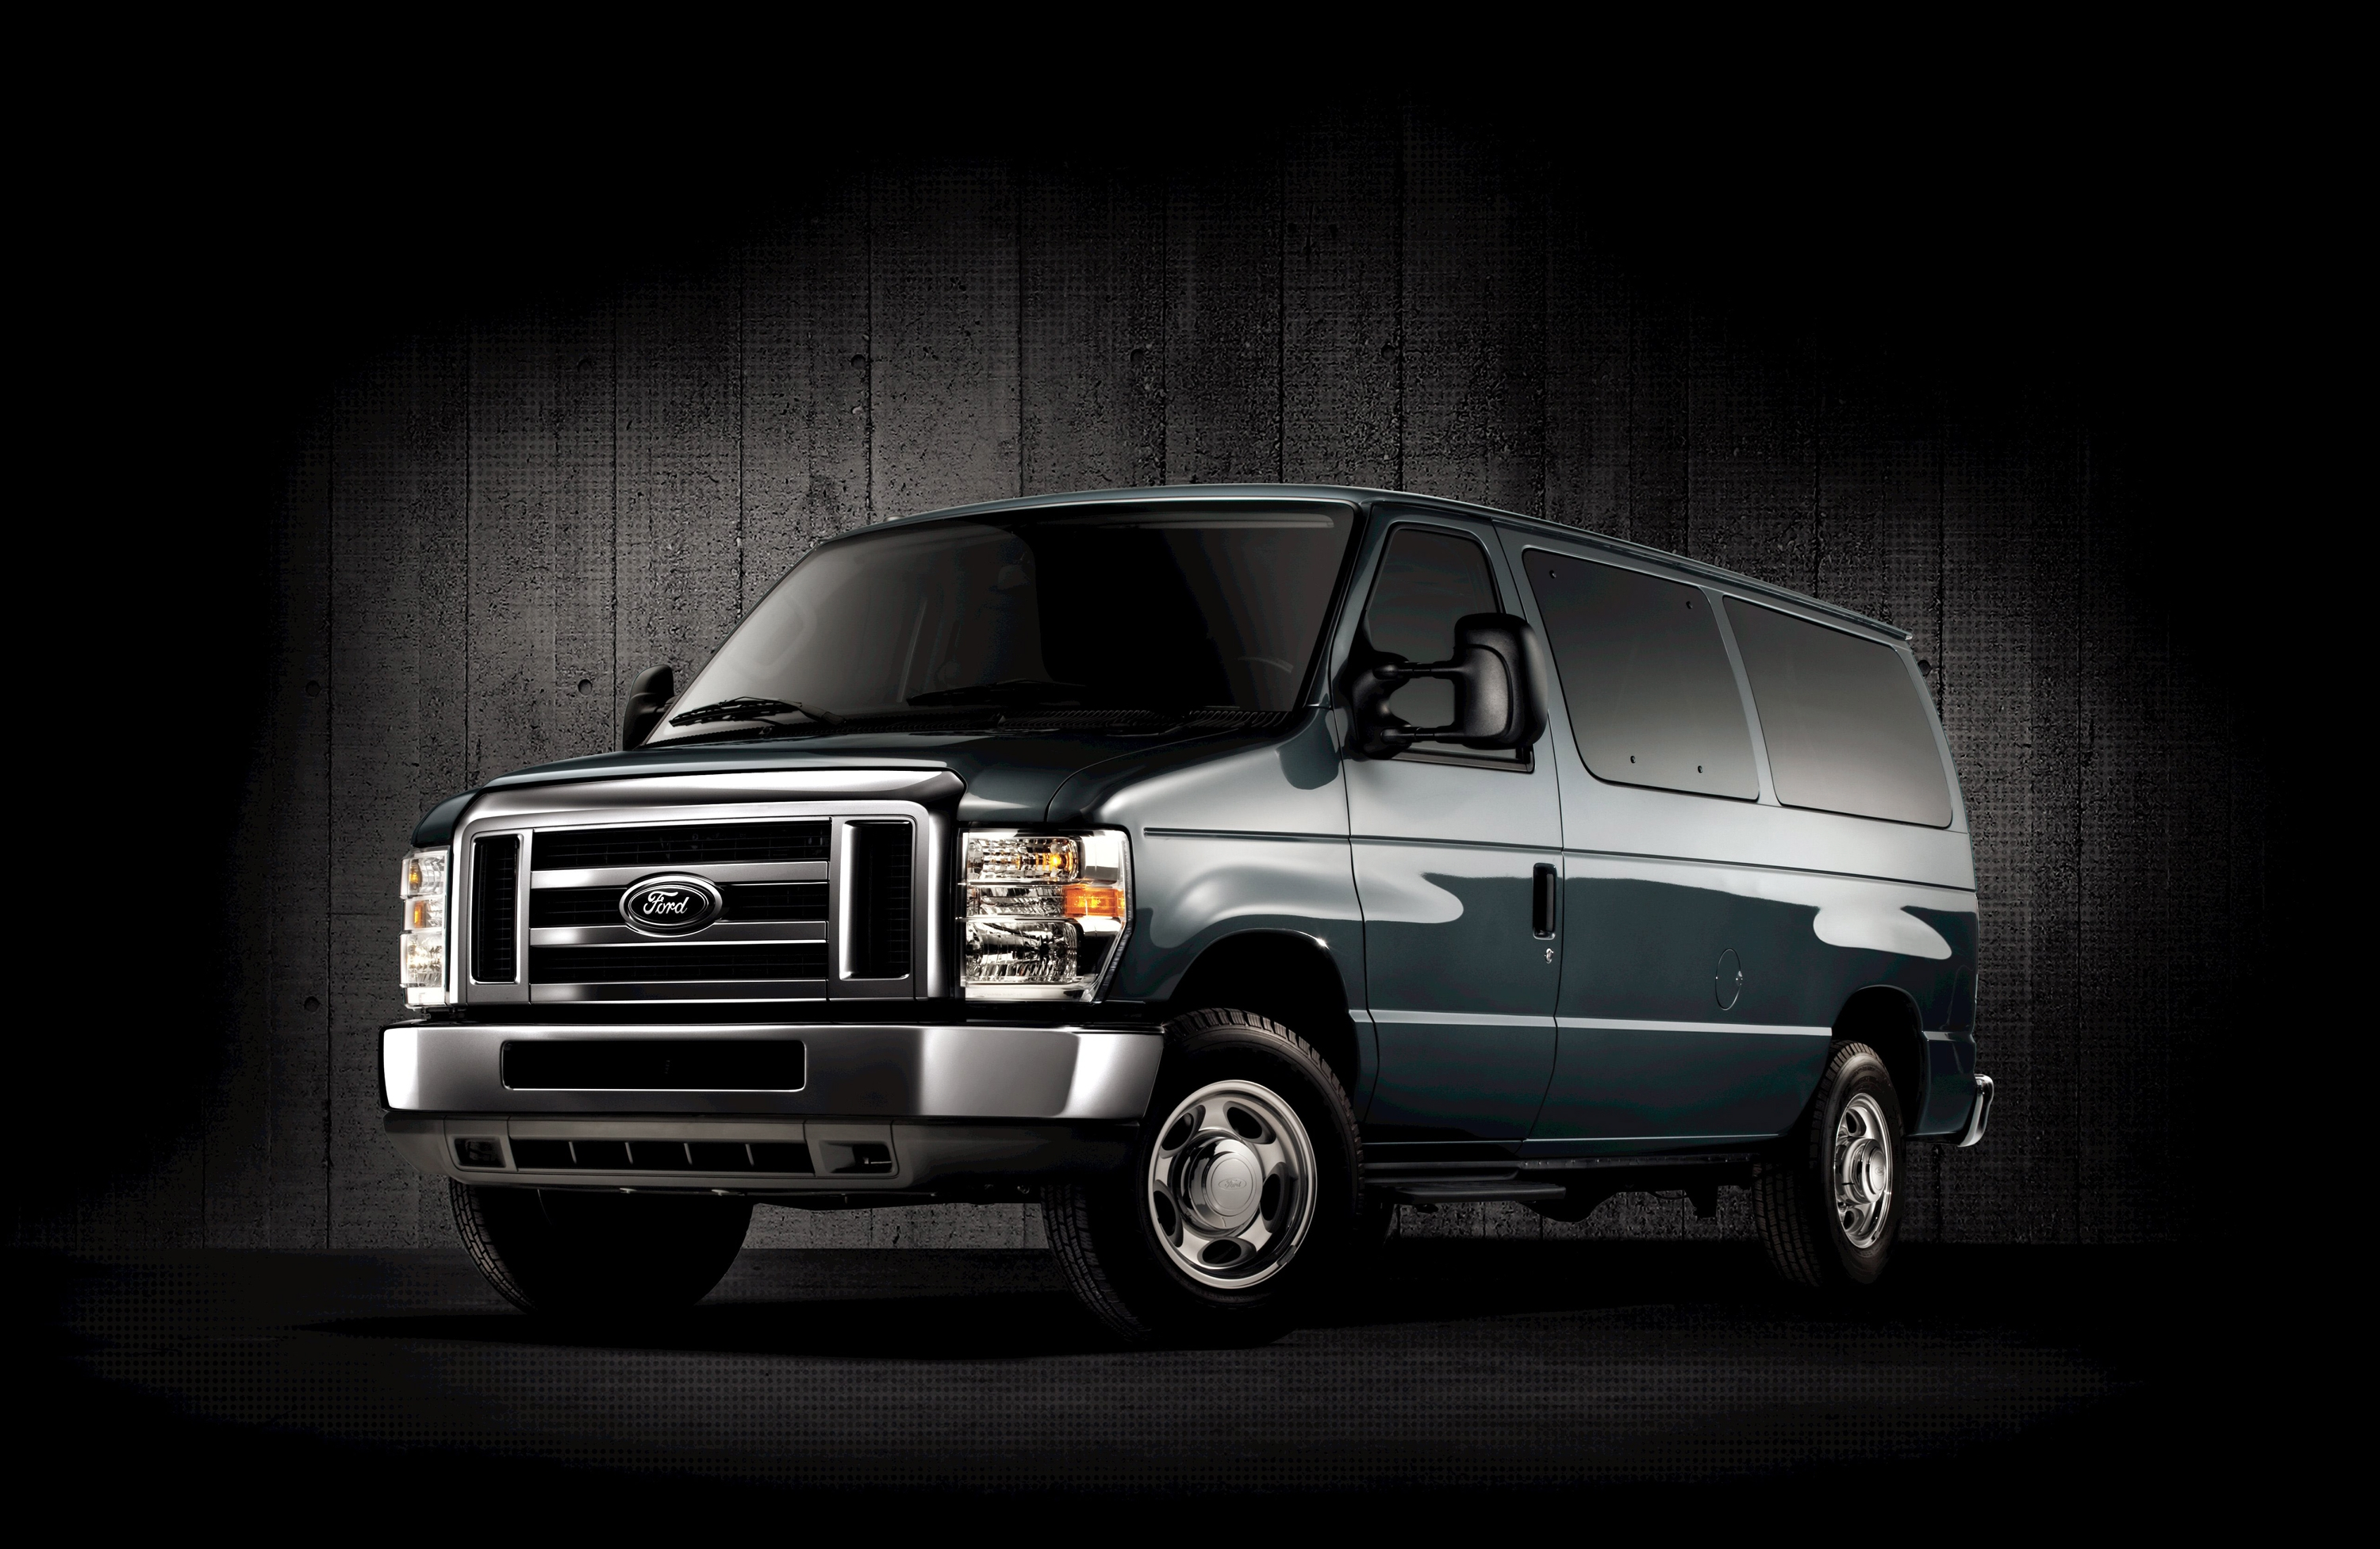 2011 Ford E-series Van #10